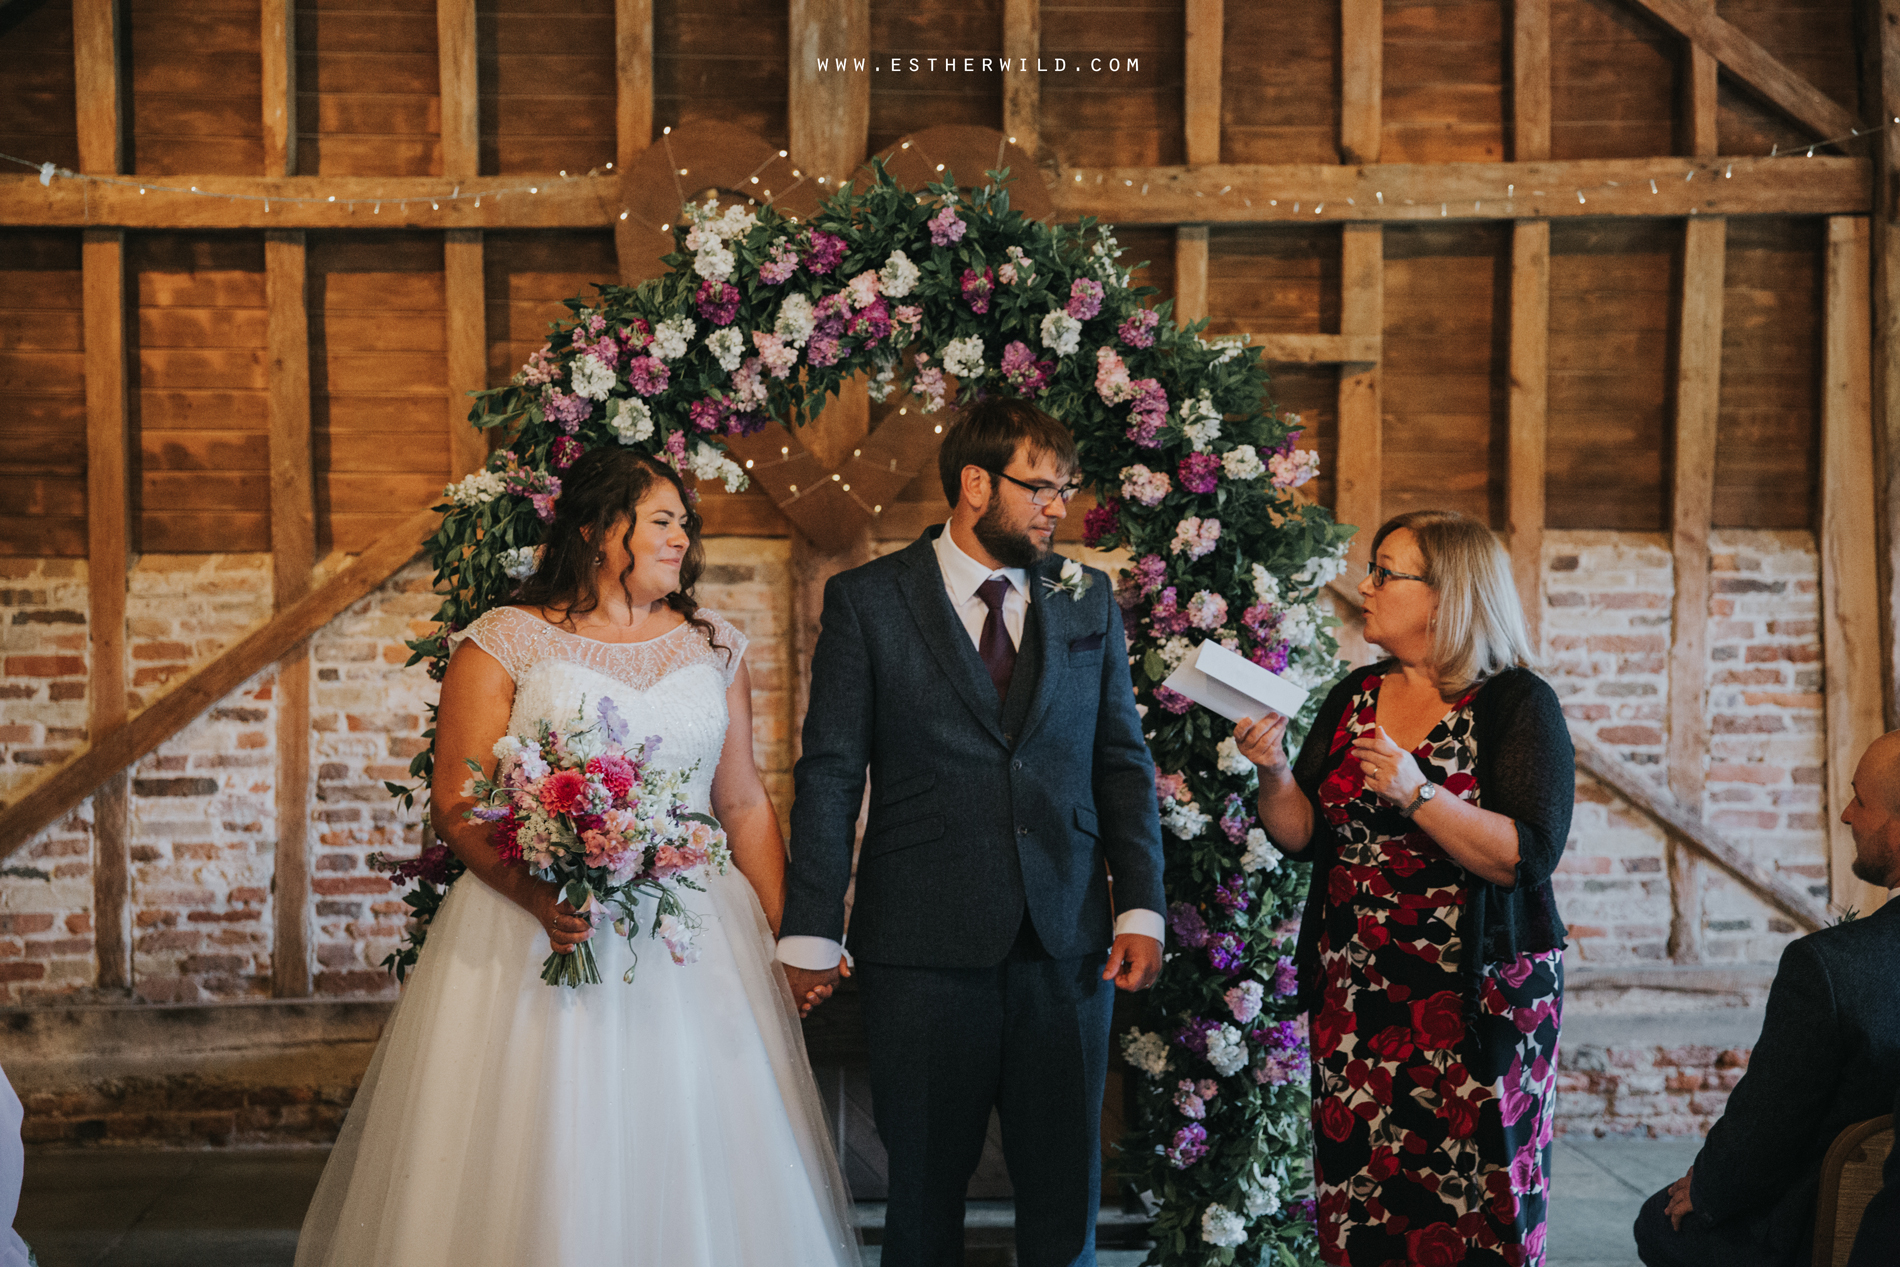 The_Red_Barn_Wedding_Kings_Lynn_Norfolk_IMG_0975.jpg